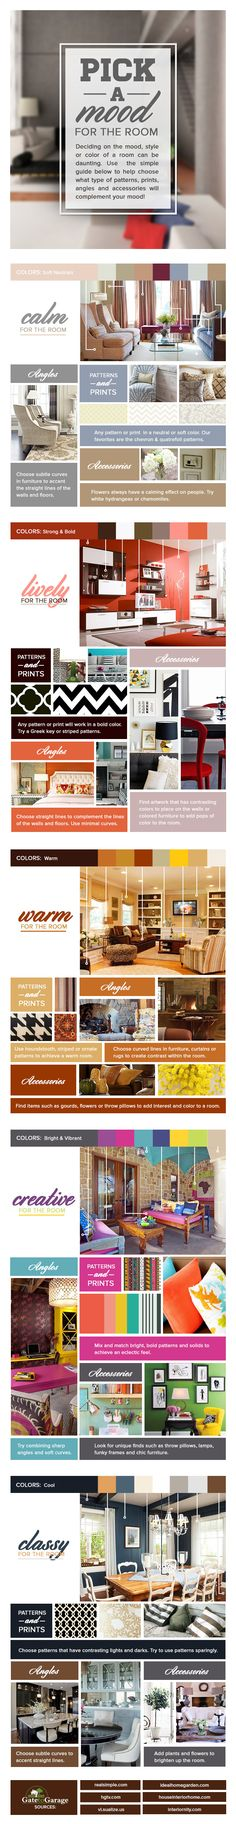 With so many color schemes, patterns and designs, it's easy to get confused with what you really want. Here's a guide to get you started!